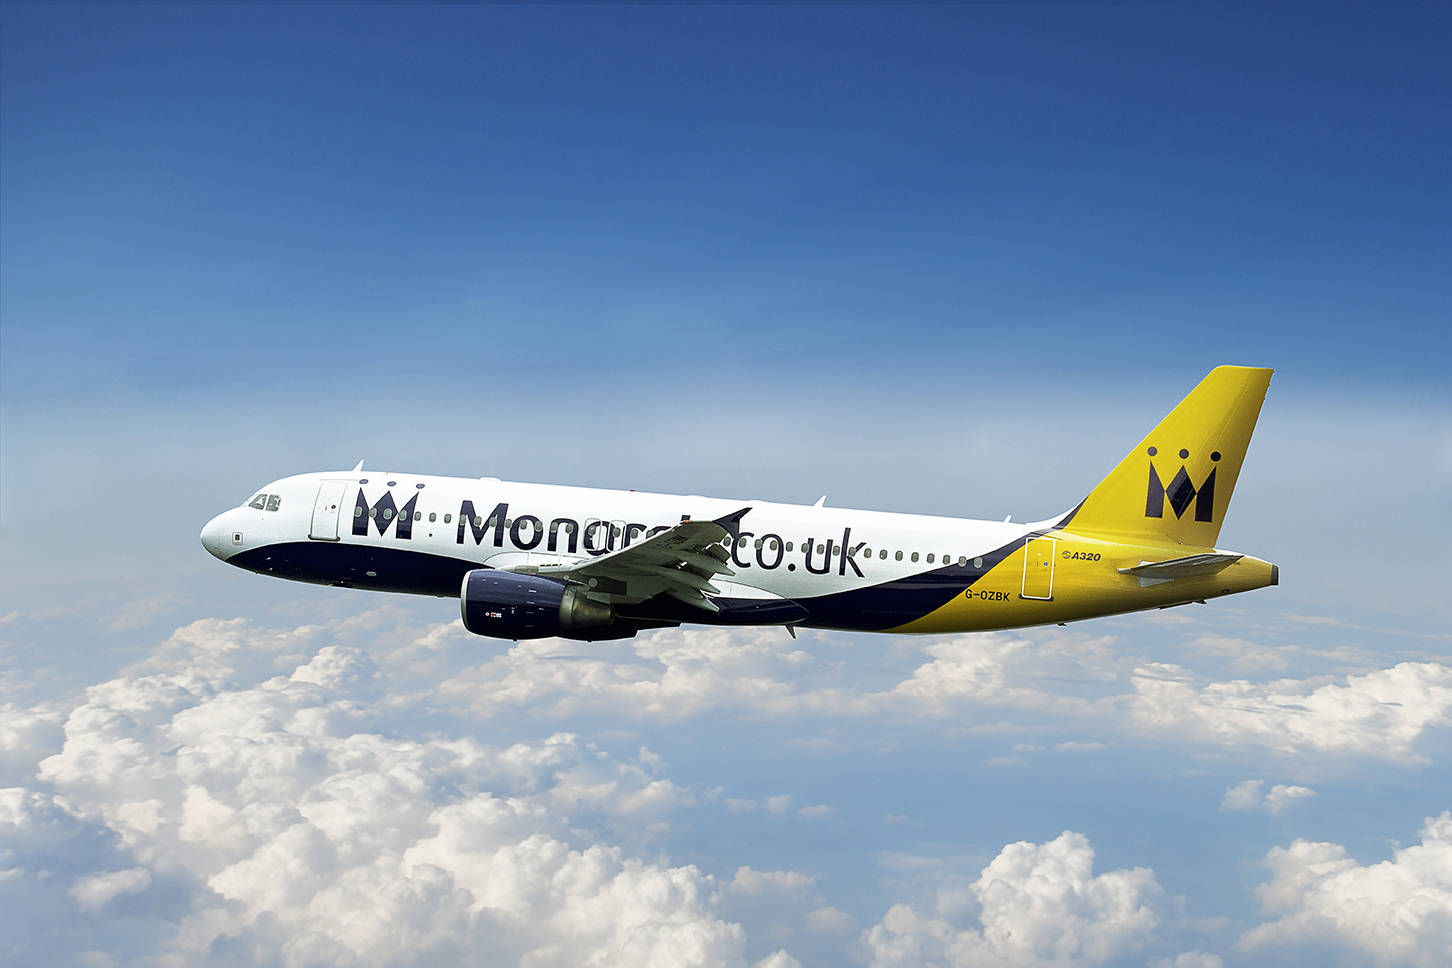 Biggest ever peacetime repatriation launched as Monarch Airlines goes into administration